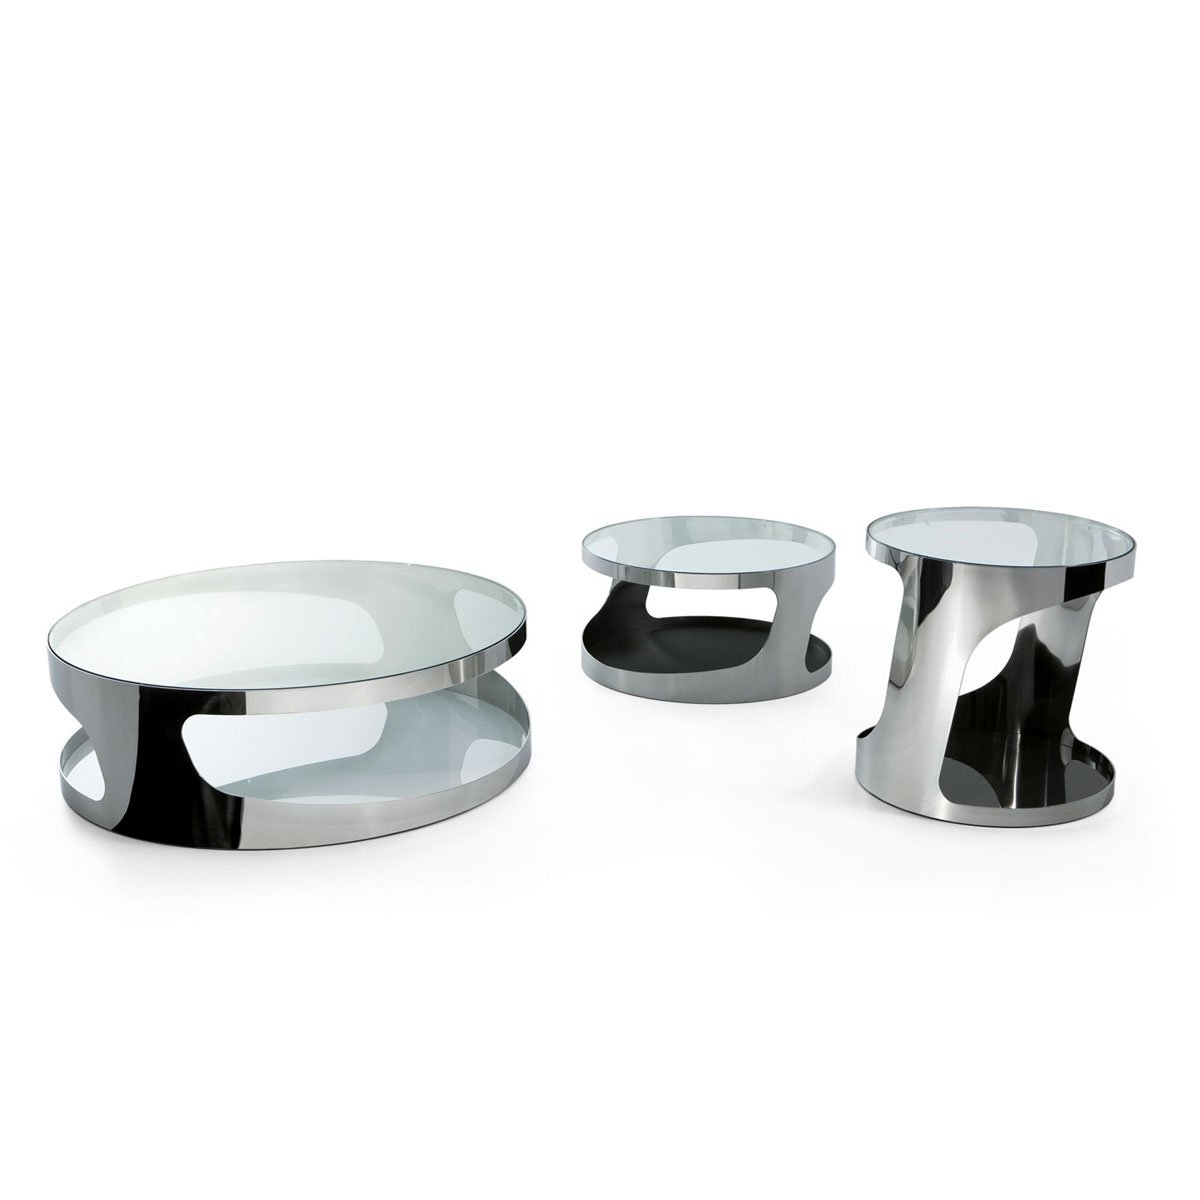 Tab Round Glass And Metal Coffee Table By Gallotti Radice Klarity Glass Furniture